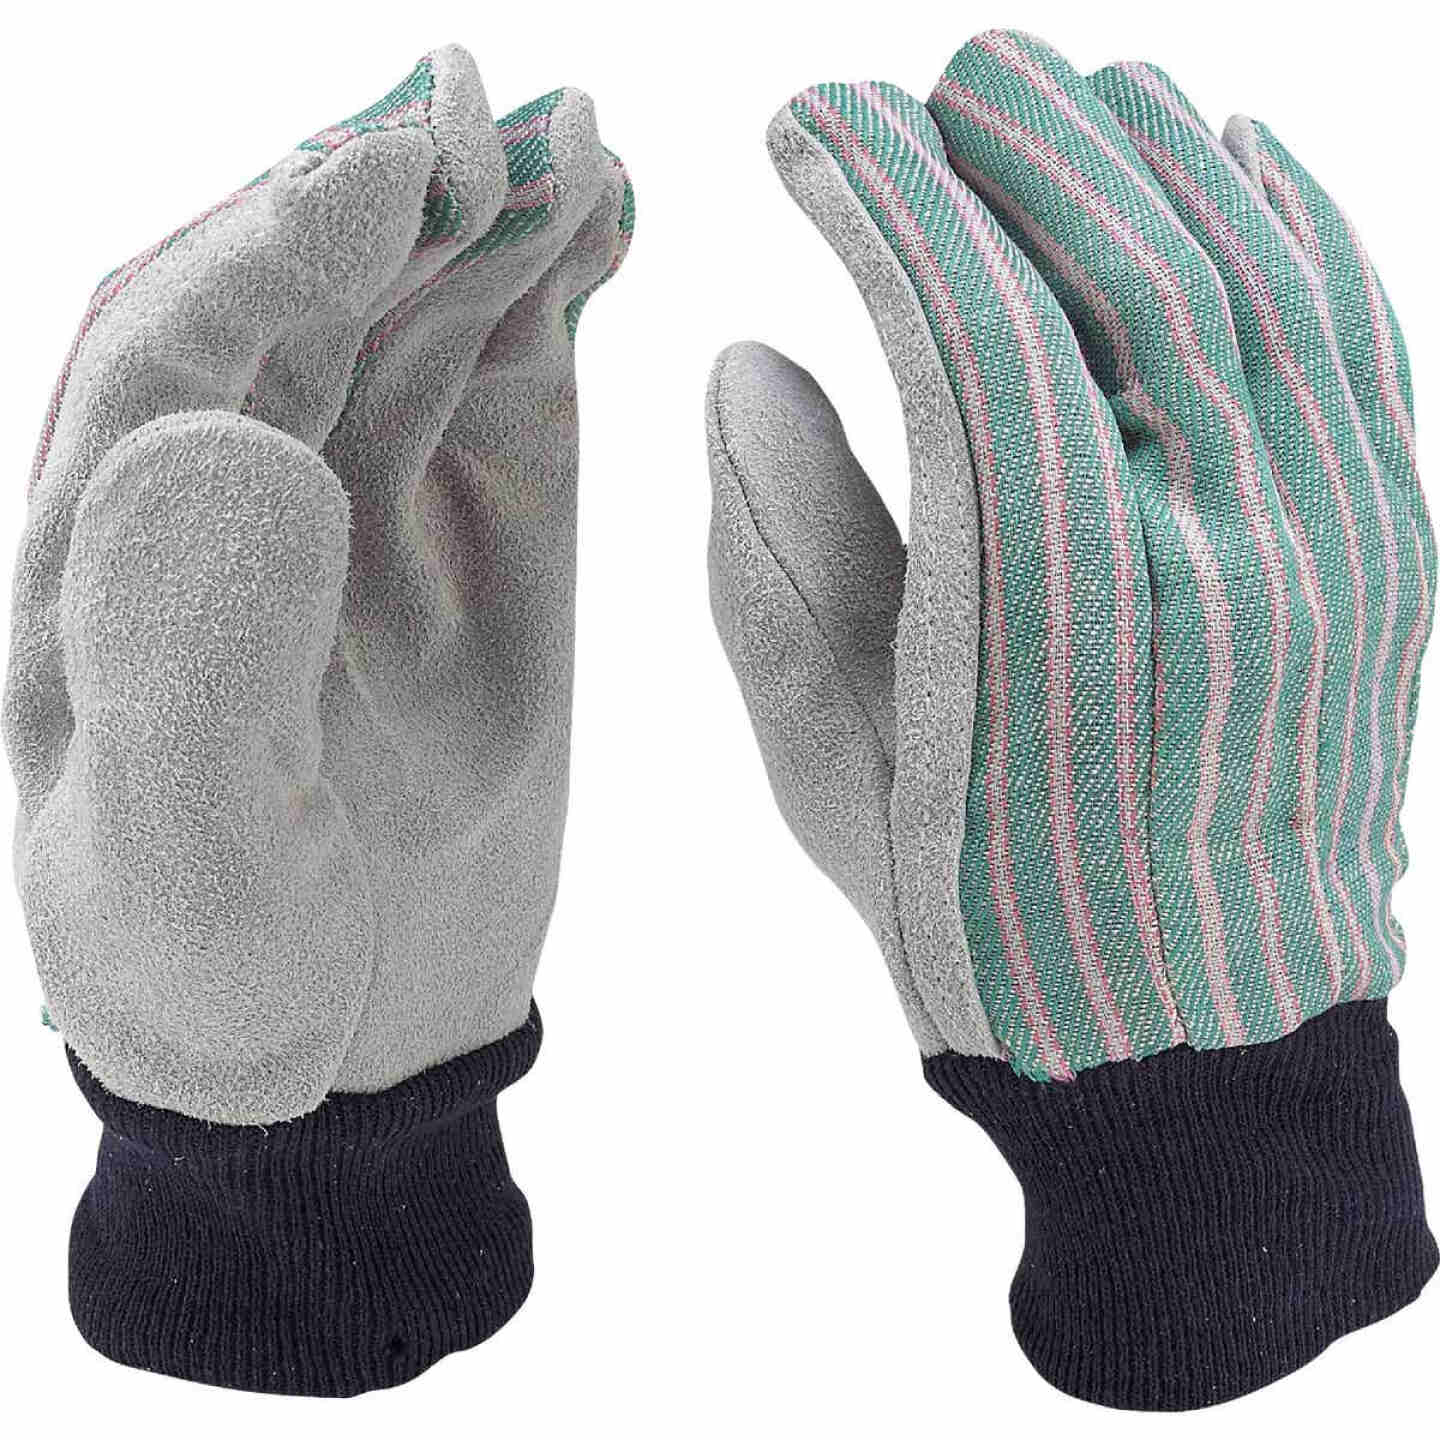 Do it Men's Large Cotton Canvas Leather Palm Work Glove Image 3